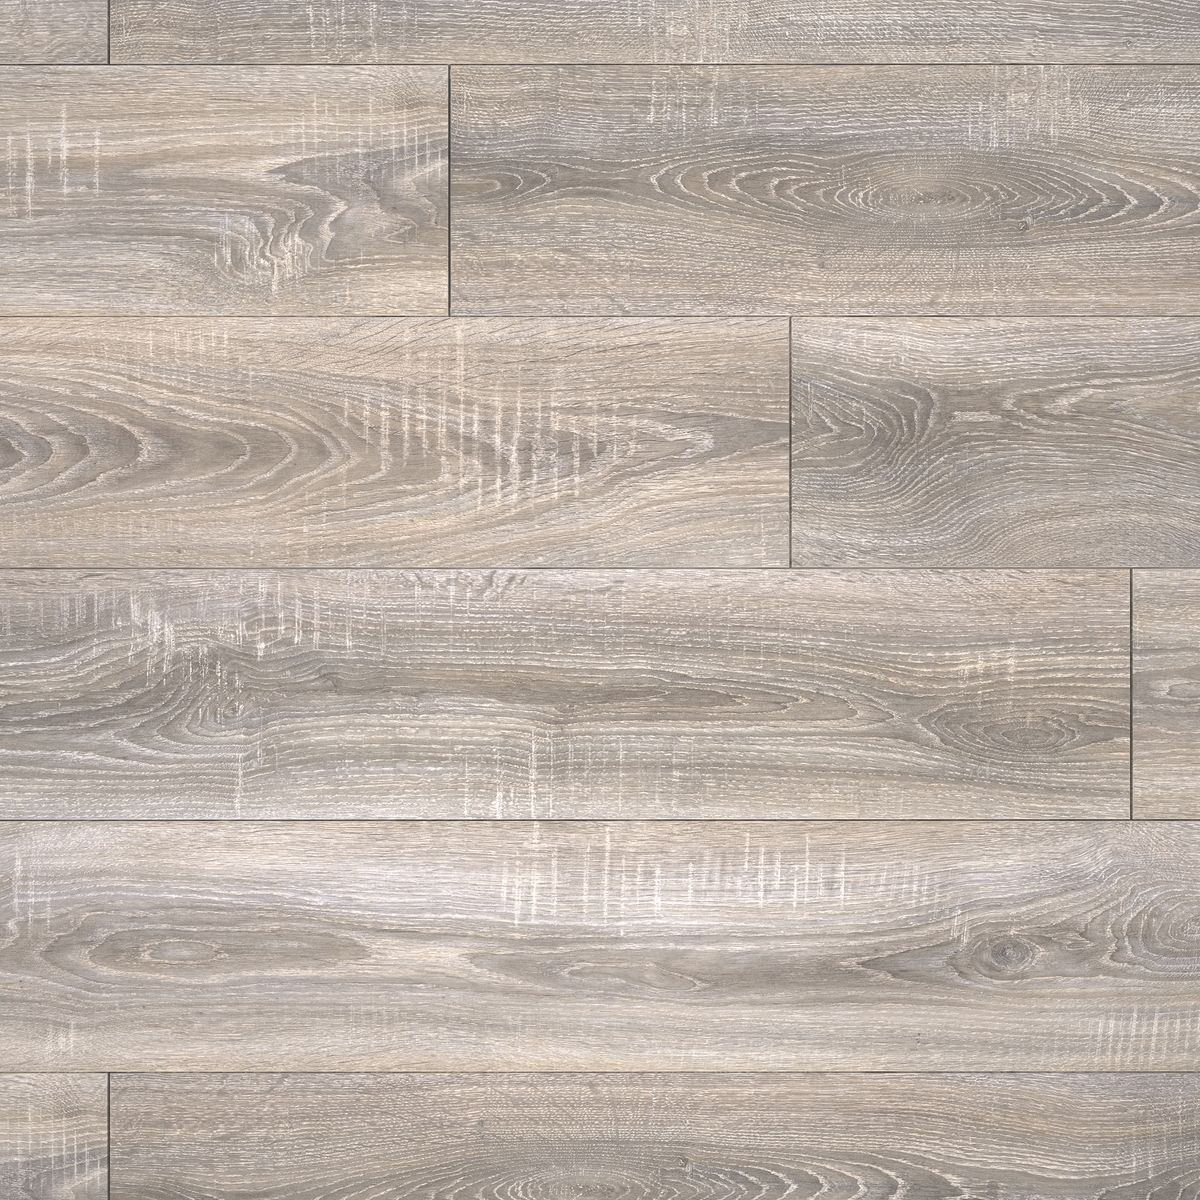 Patwma Laminate Coligny Artens Se Gkri Apoxrwsh Me Paxos 10mm In 2020 Flooring Hardwood Floors 10 Things